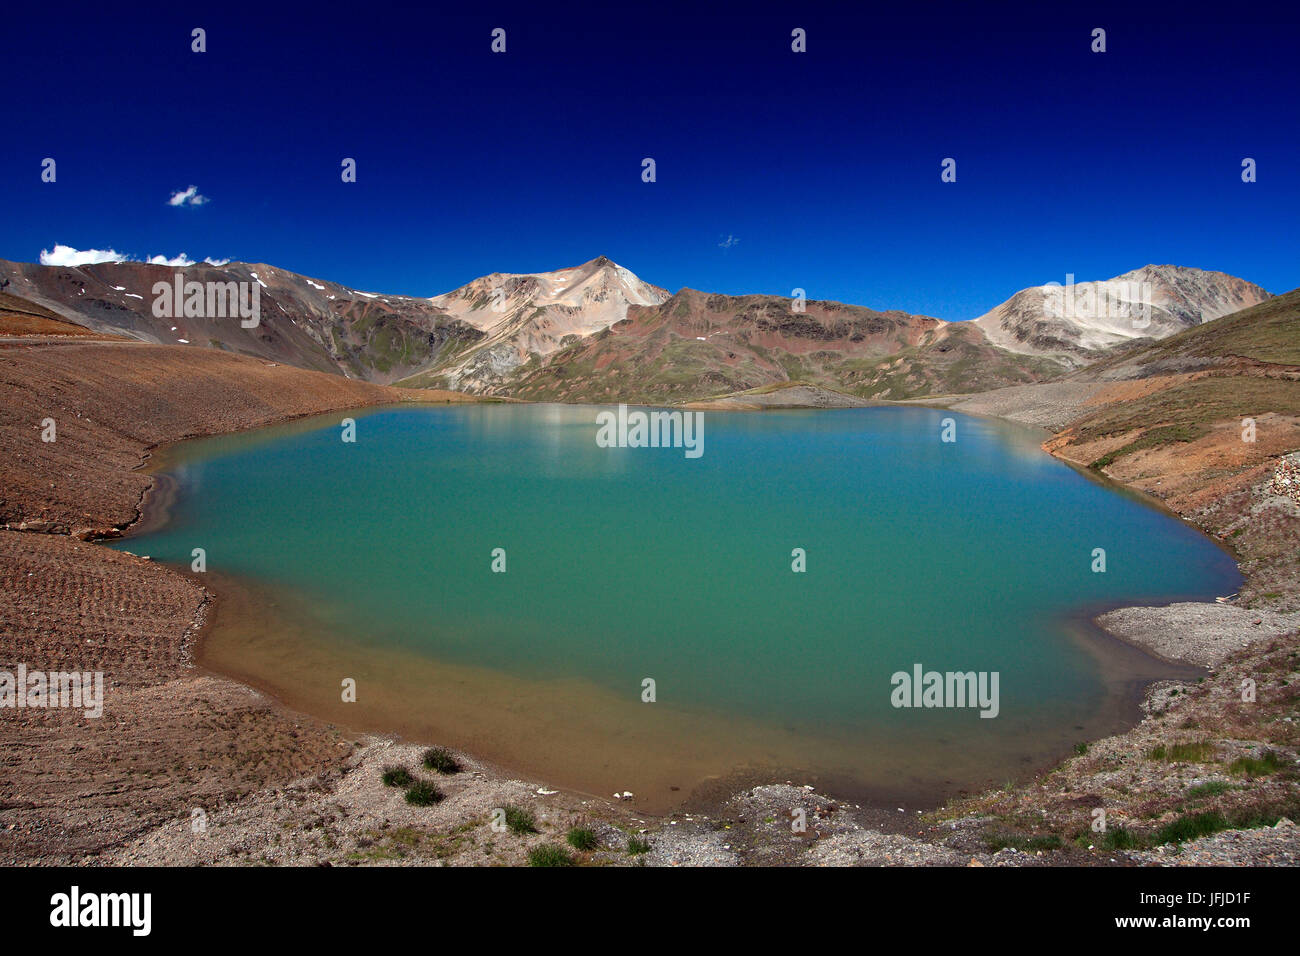 Lake Salin a small body of water on arrival of the ski lifts in Livigno used for artificial snow for the ski slopes - Stock Image